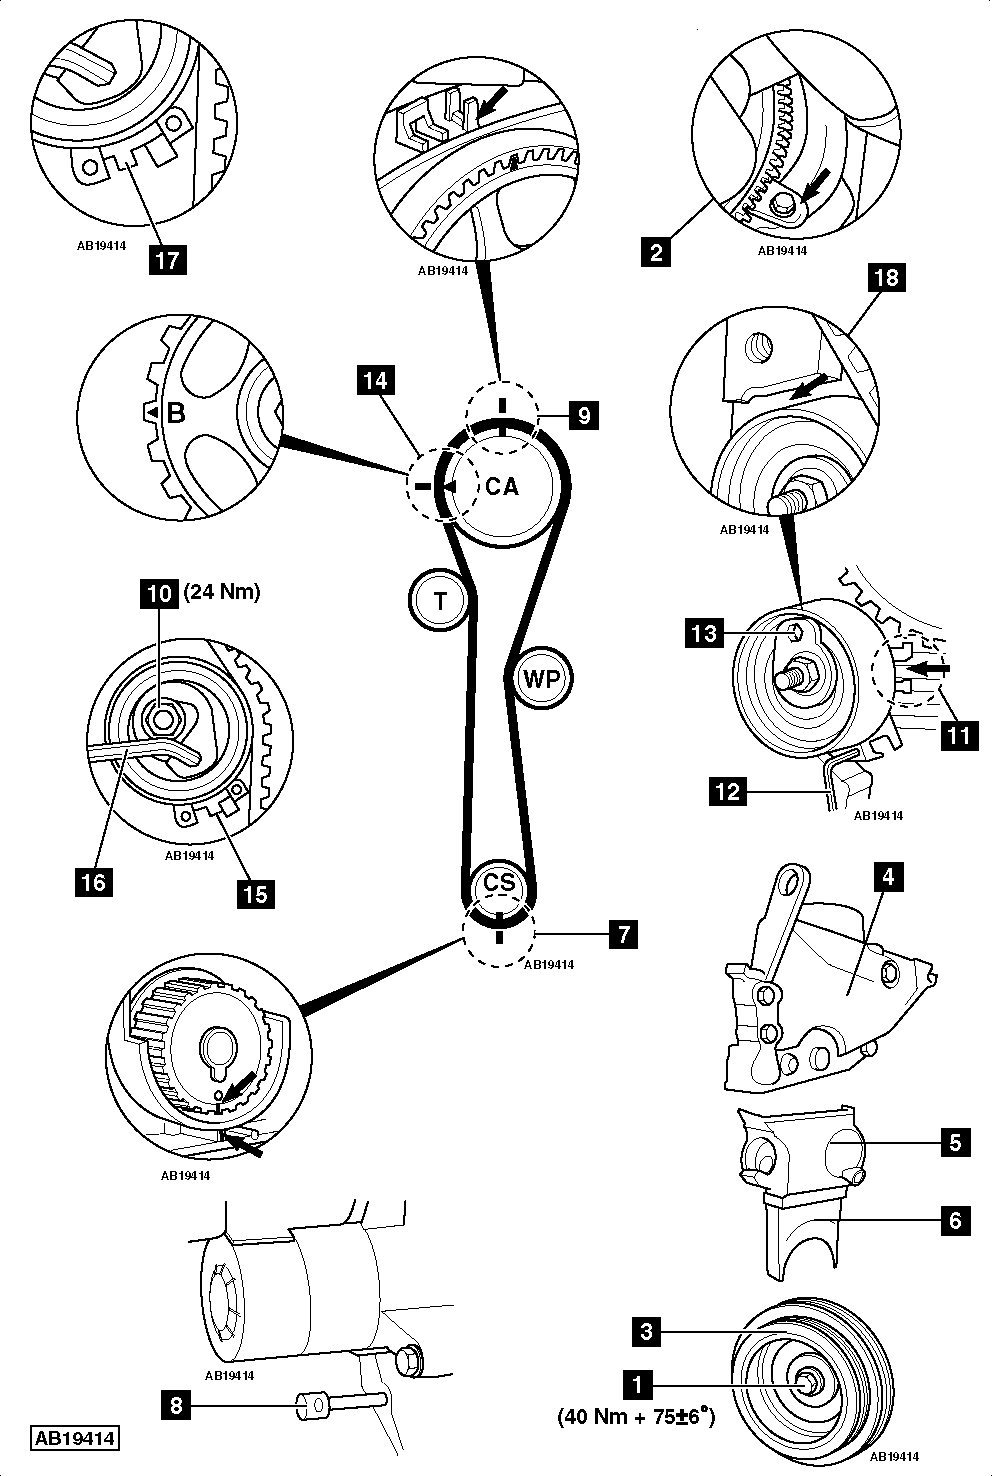 1985 Toyota Land Rover Instrument Cluster Wiring Diagram additionally 2002 Mazda Miata Engine Diagram together with 5tzmy Land Rover Discovery Series Ii I Ve Recently Bought 2003 further Diagram Serpentine 2004 Dodge Grand Caravan moreover How To Replace Timing Belt On A 2003 Acura Rsx. on 2003 land rover discovery steering diagram html